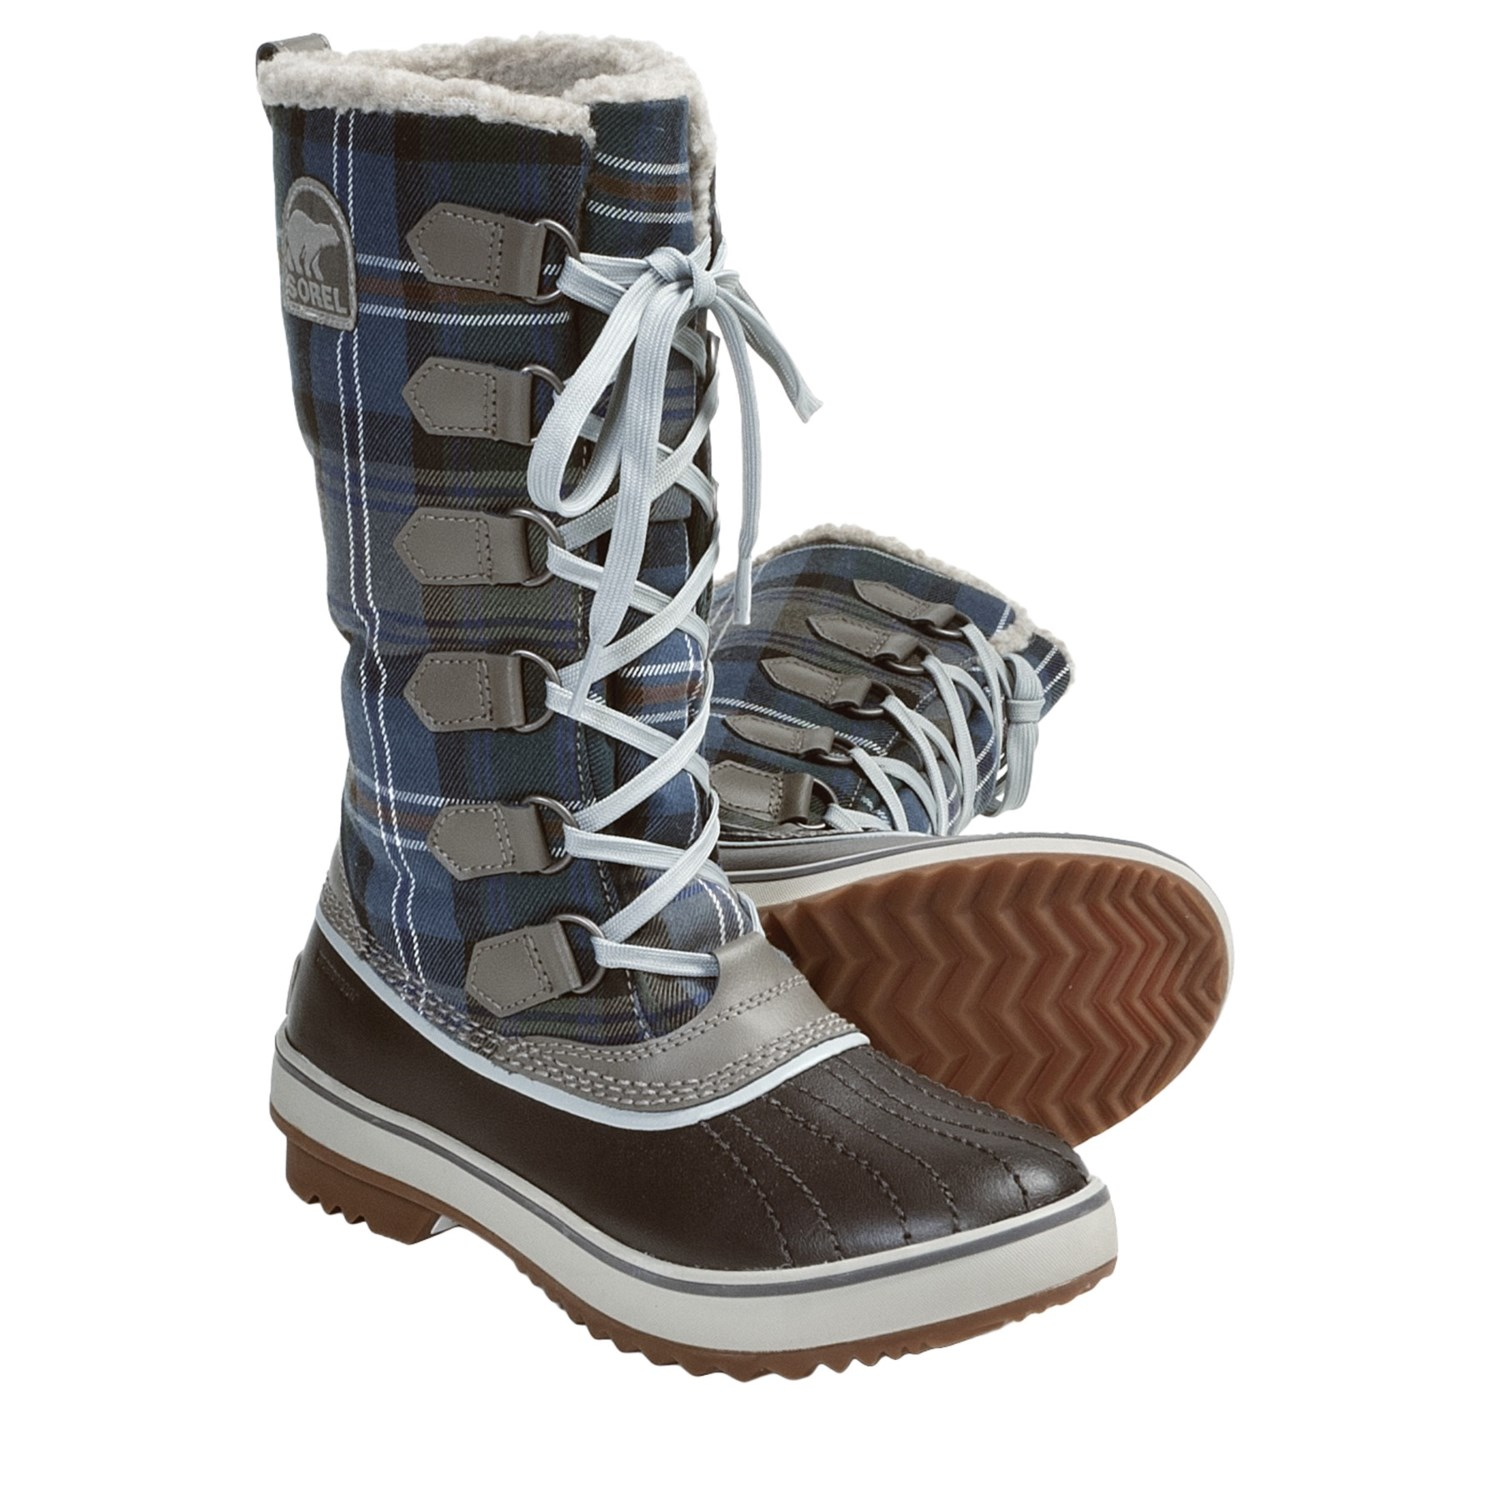 sorel tivoli high winter boots waterproof insulated